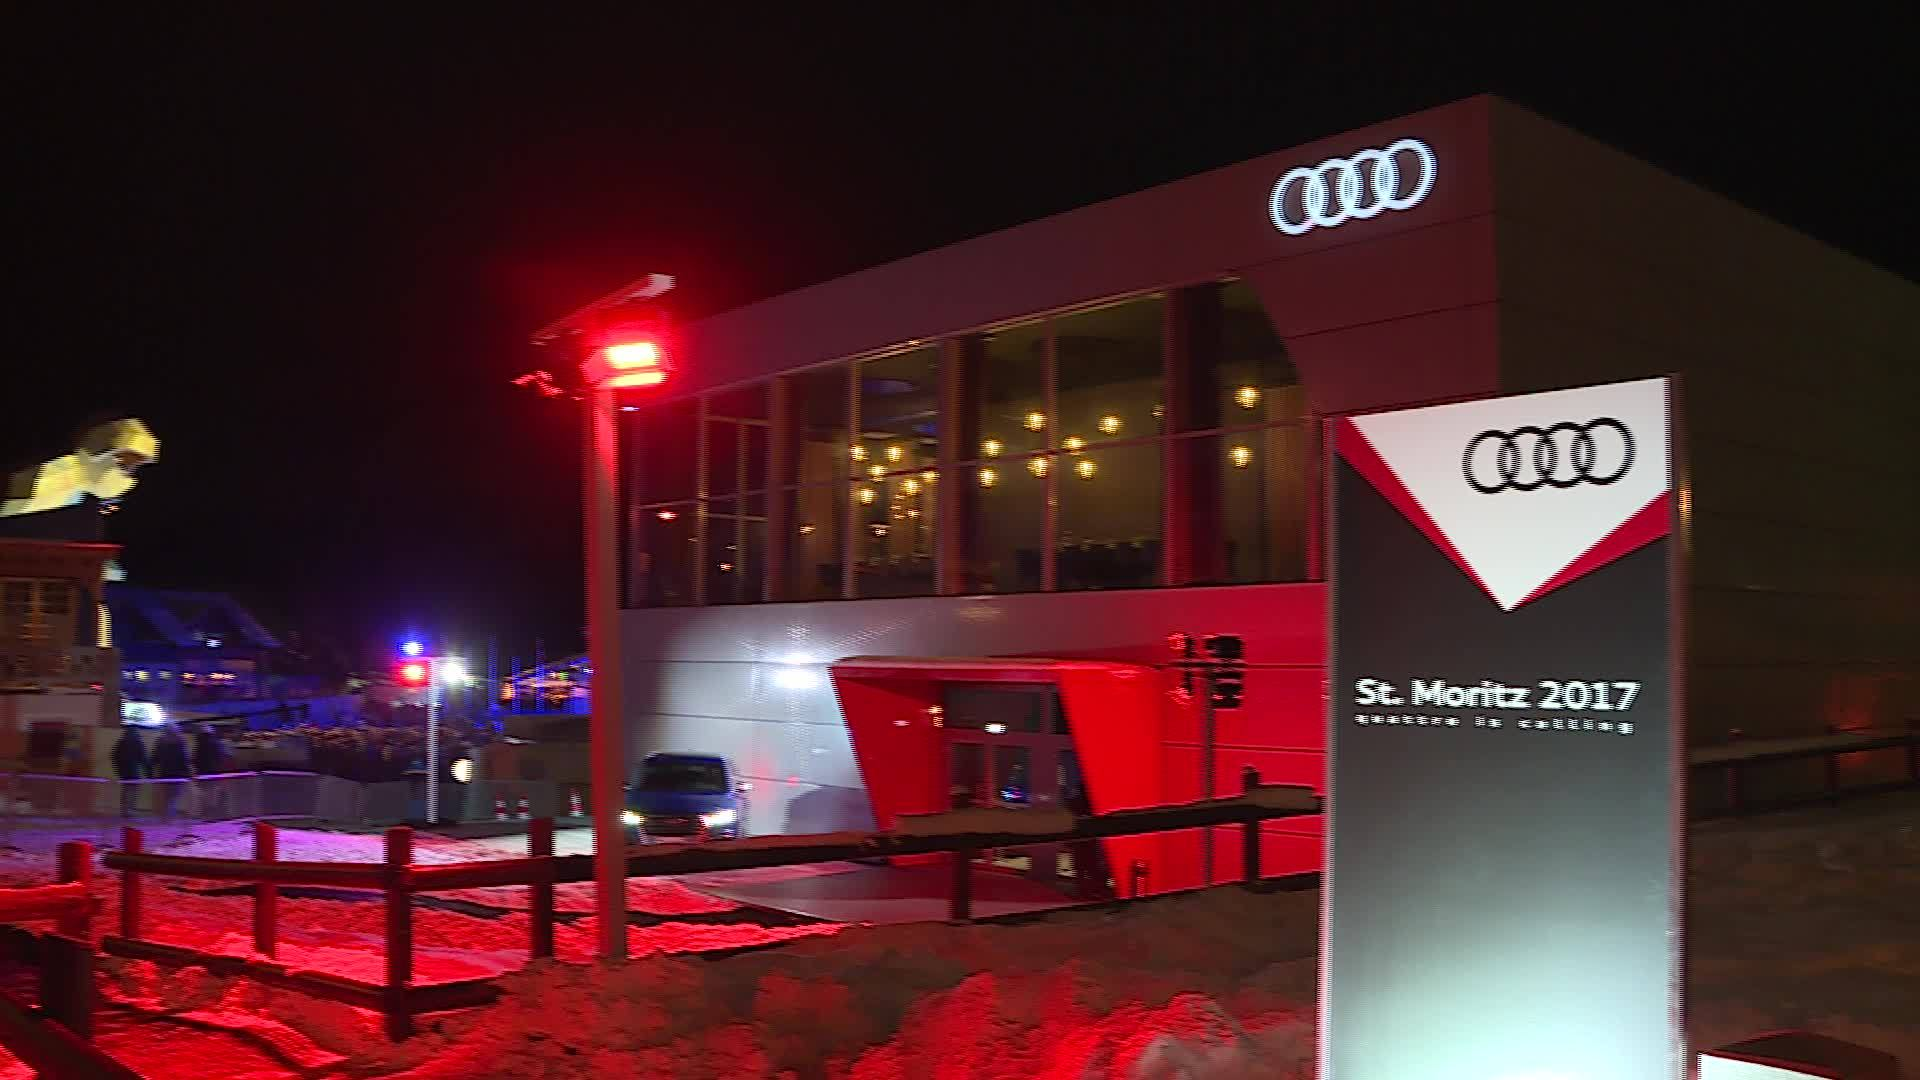 Successful Alpine World Ski Championships for Audi in St. Moritz